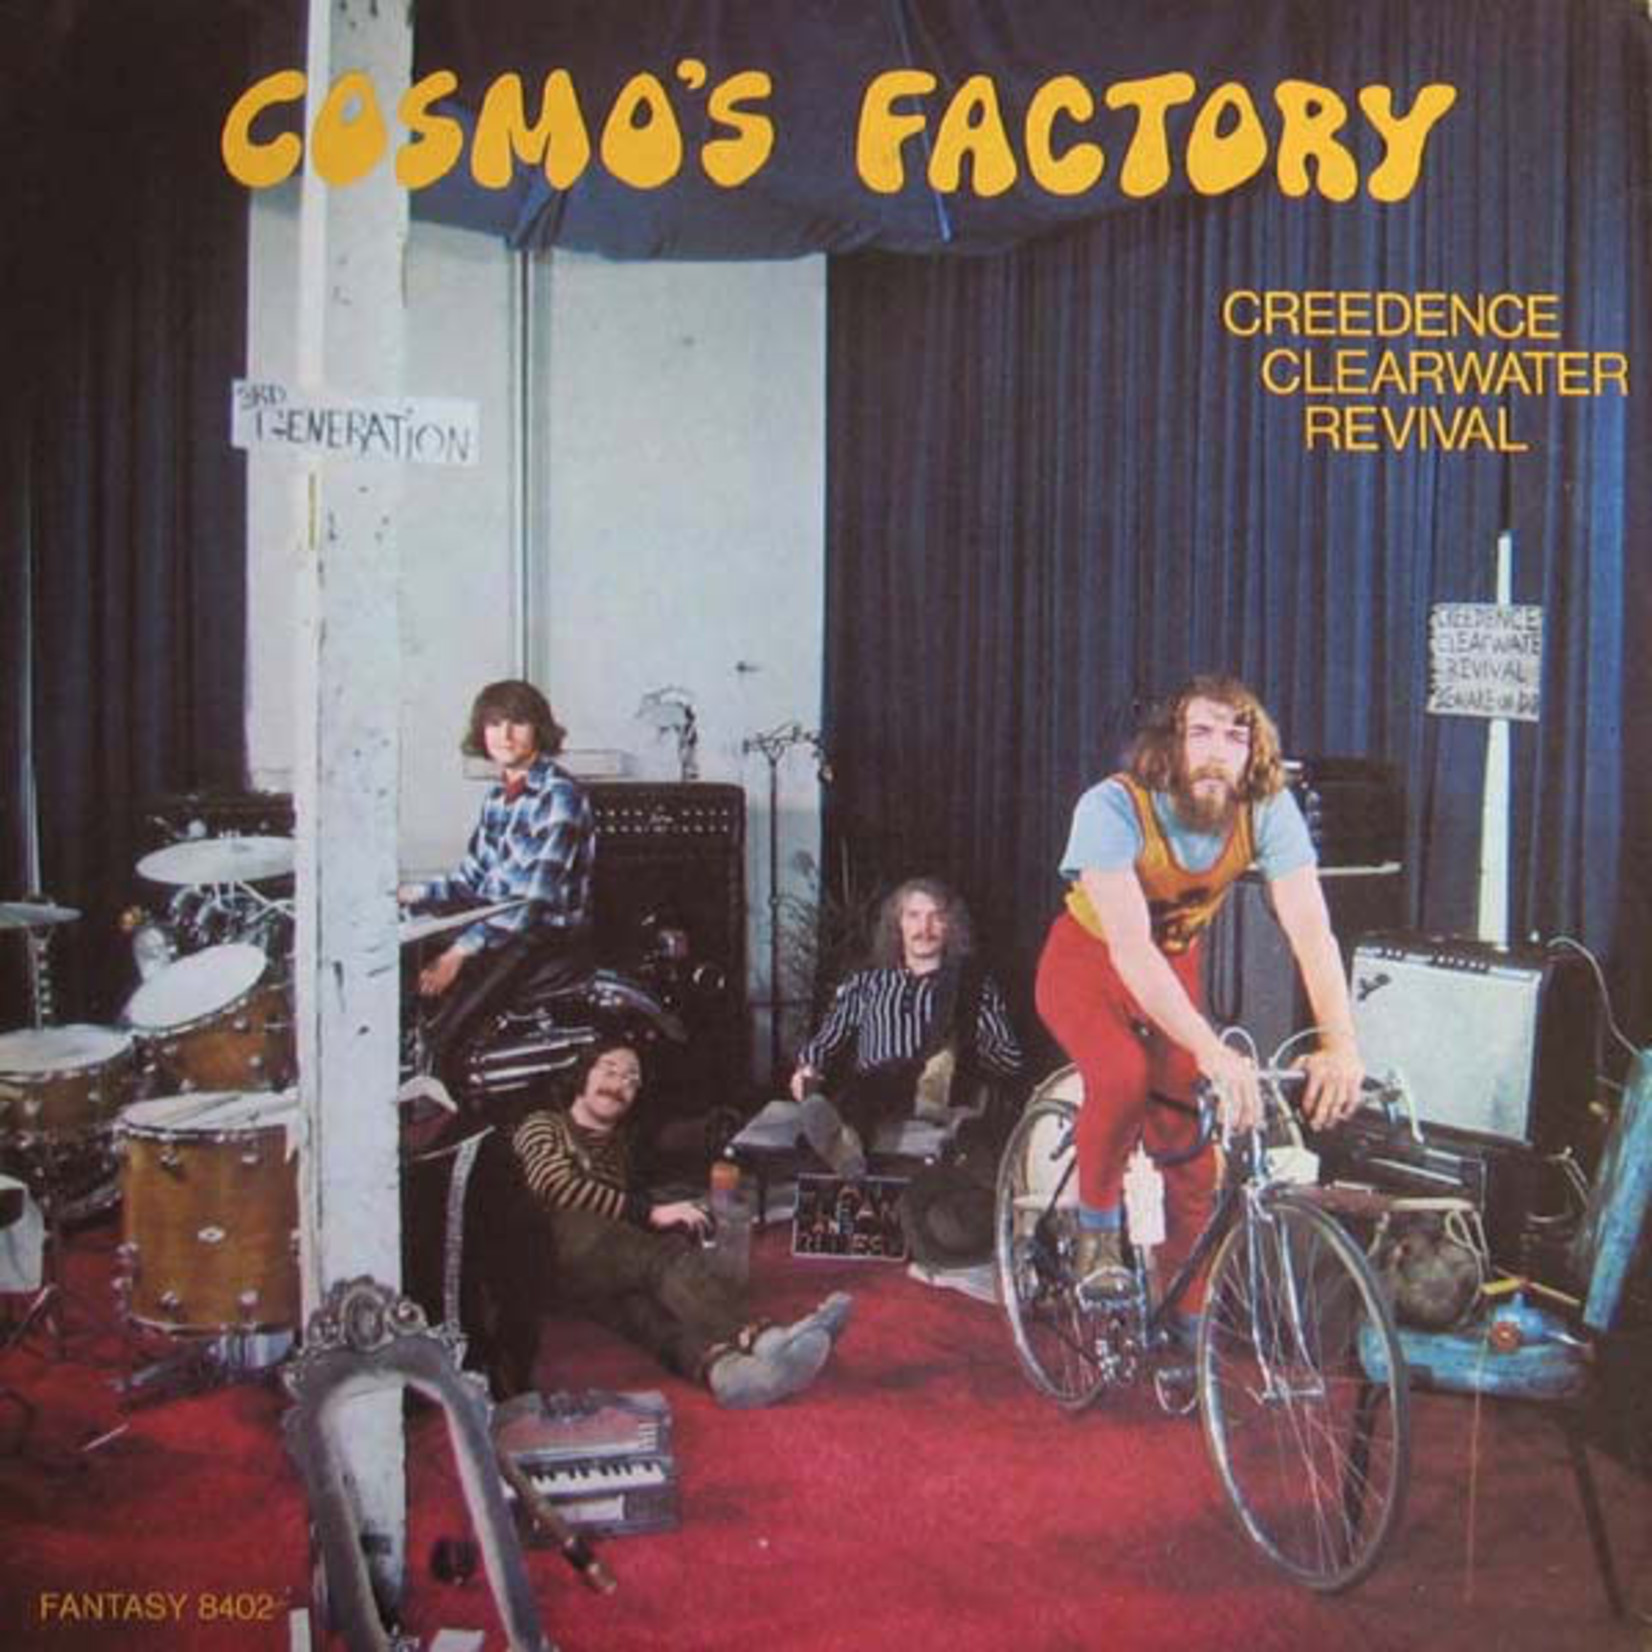 [Vintage] Creedence Clearwater Revival: Cosmo's Factory